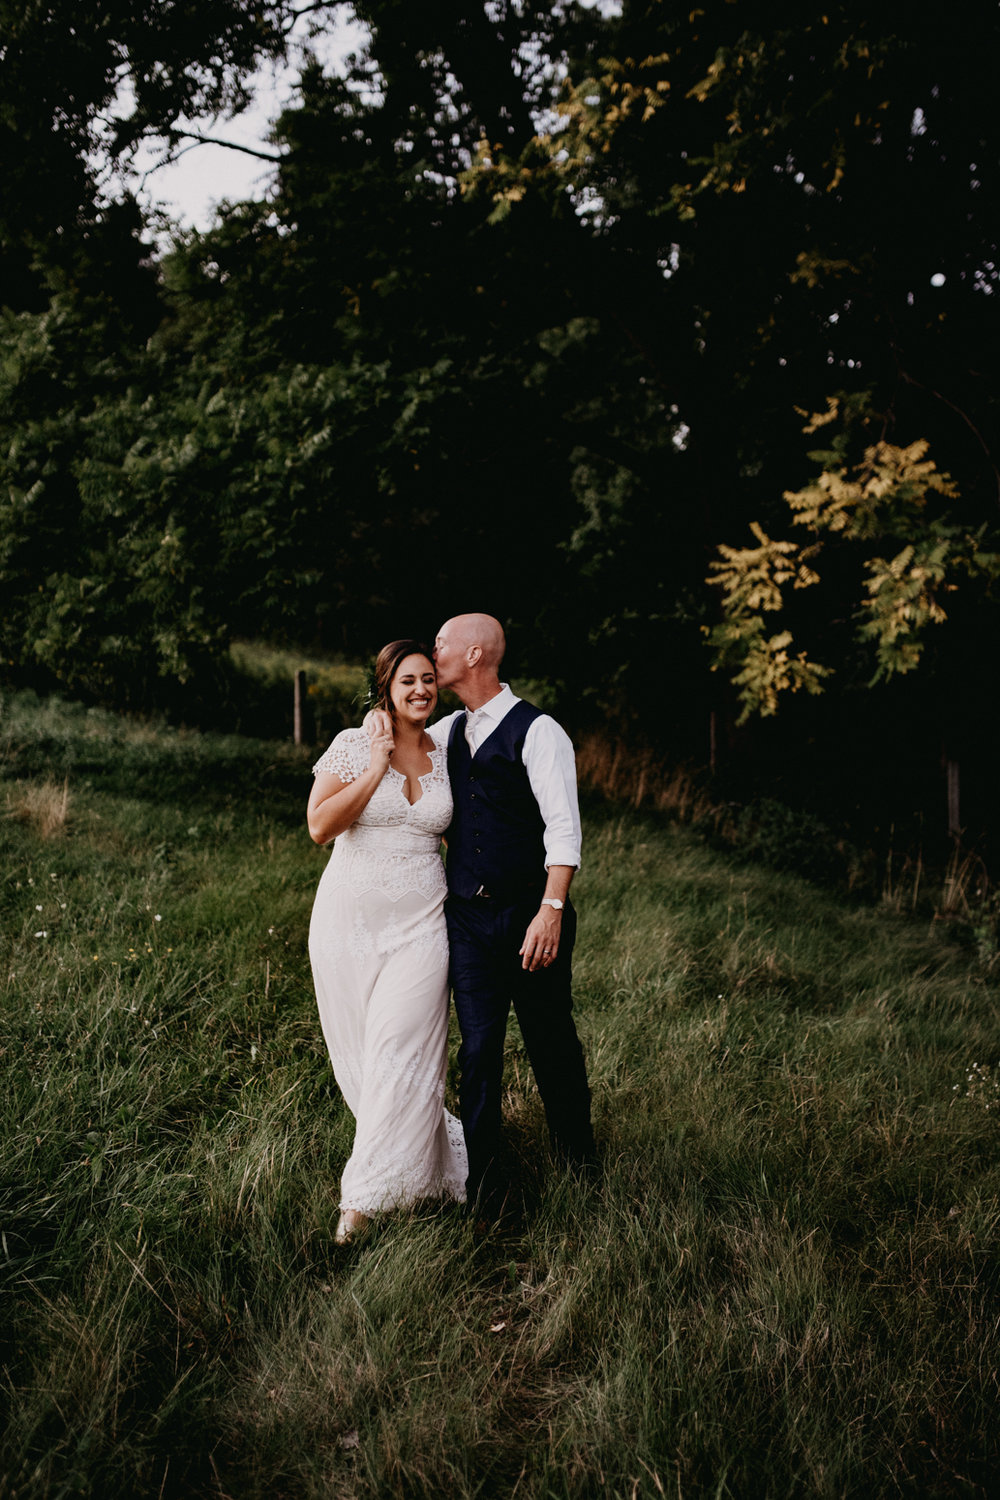 Rochester, NY Wedding Photographer (122 of 133).jpg